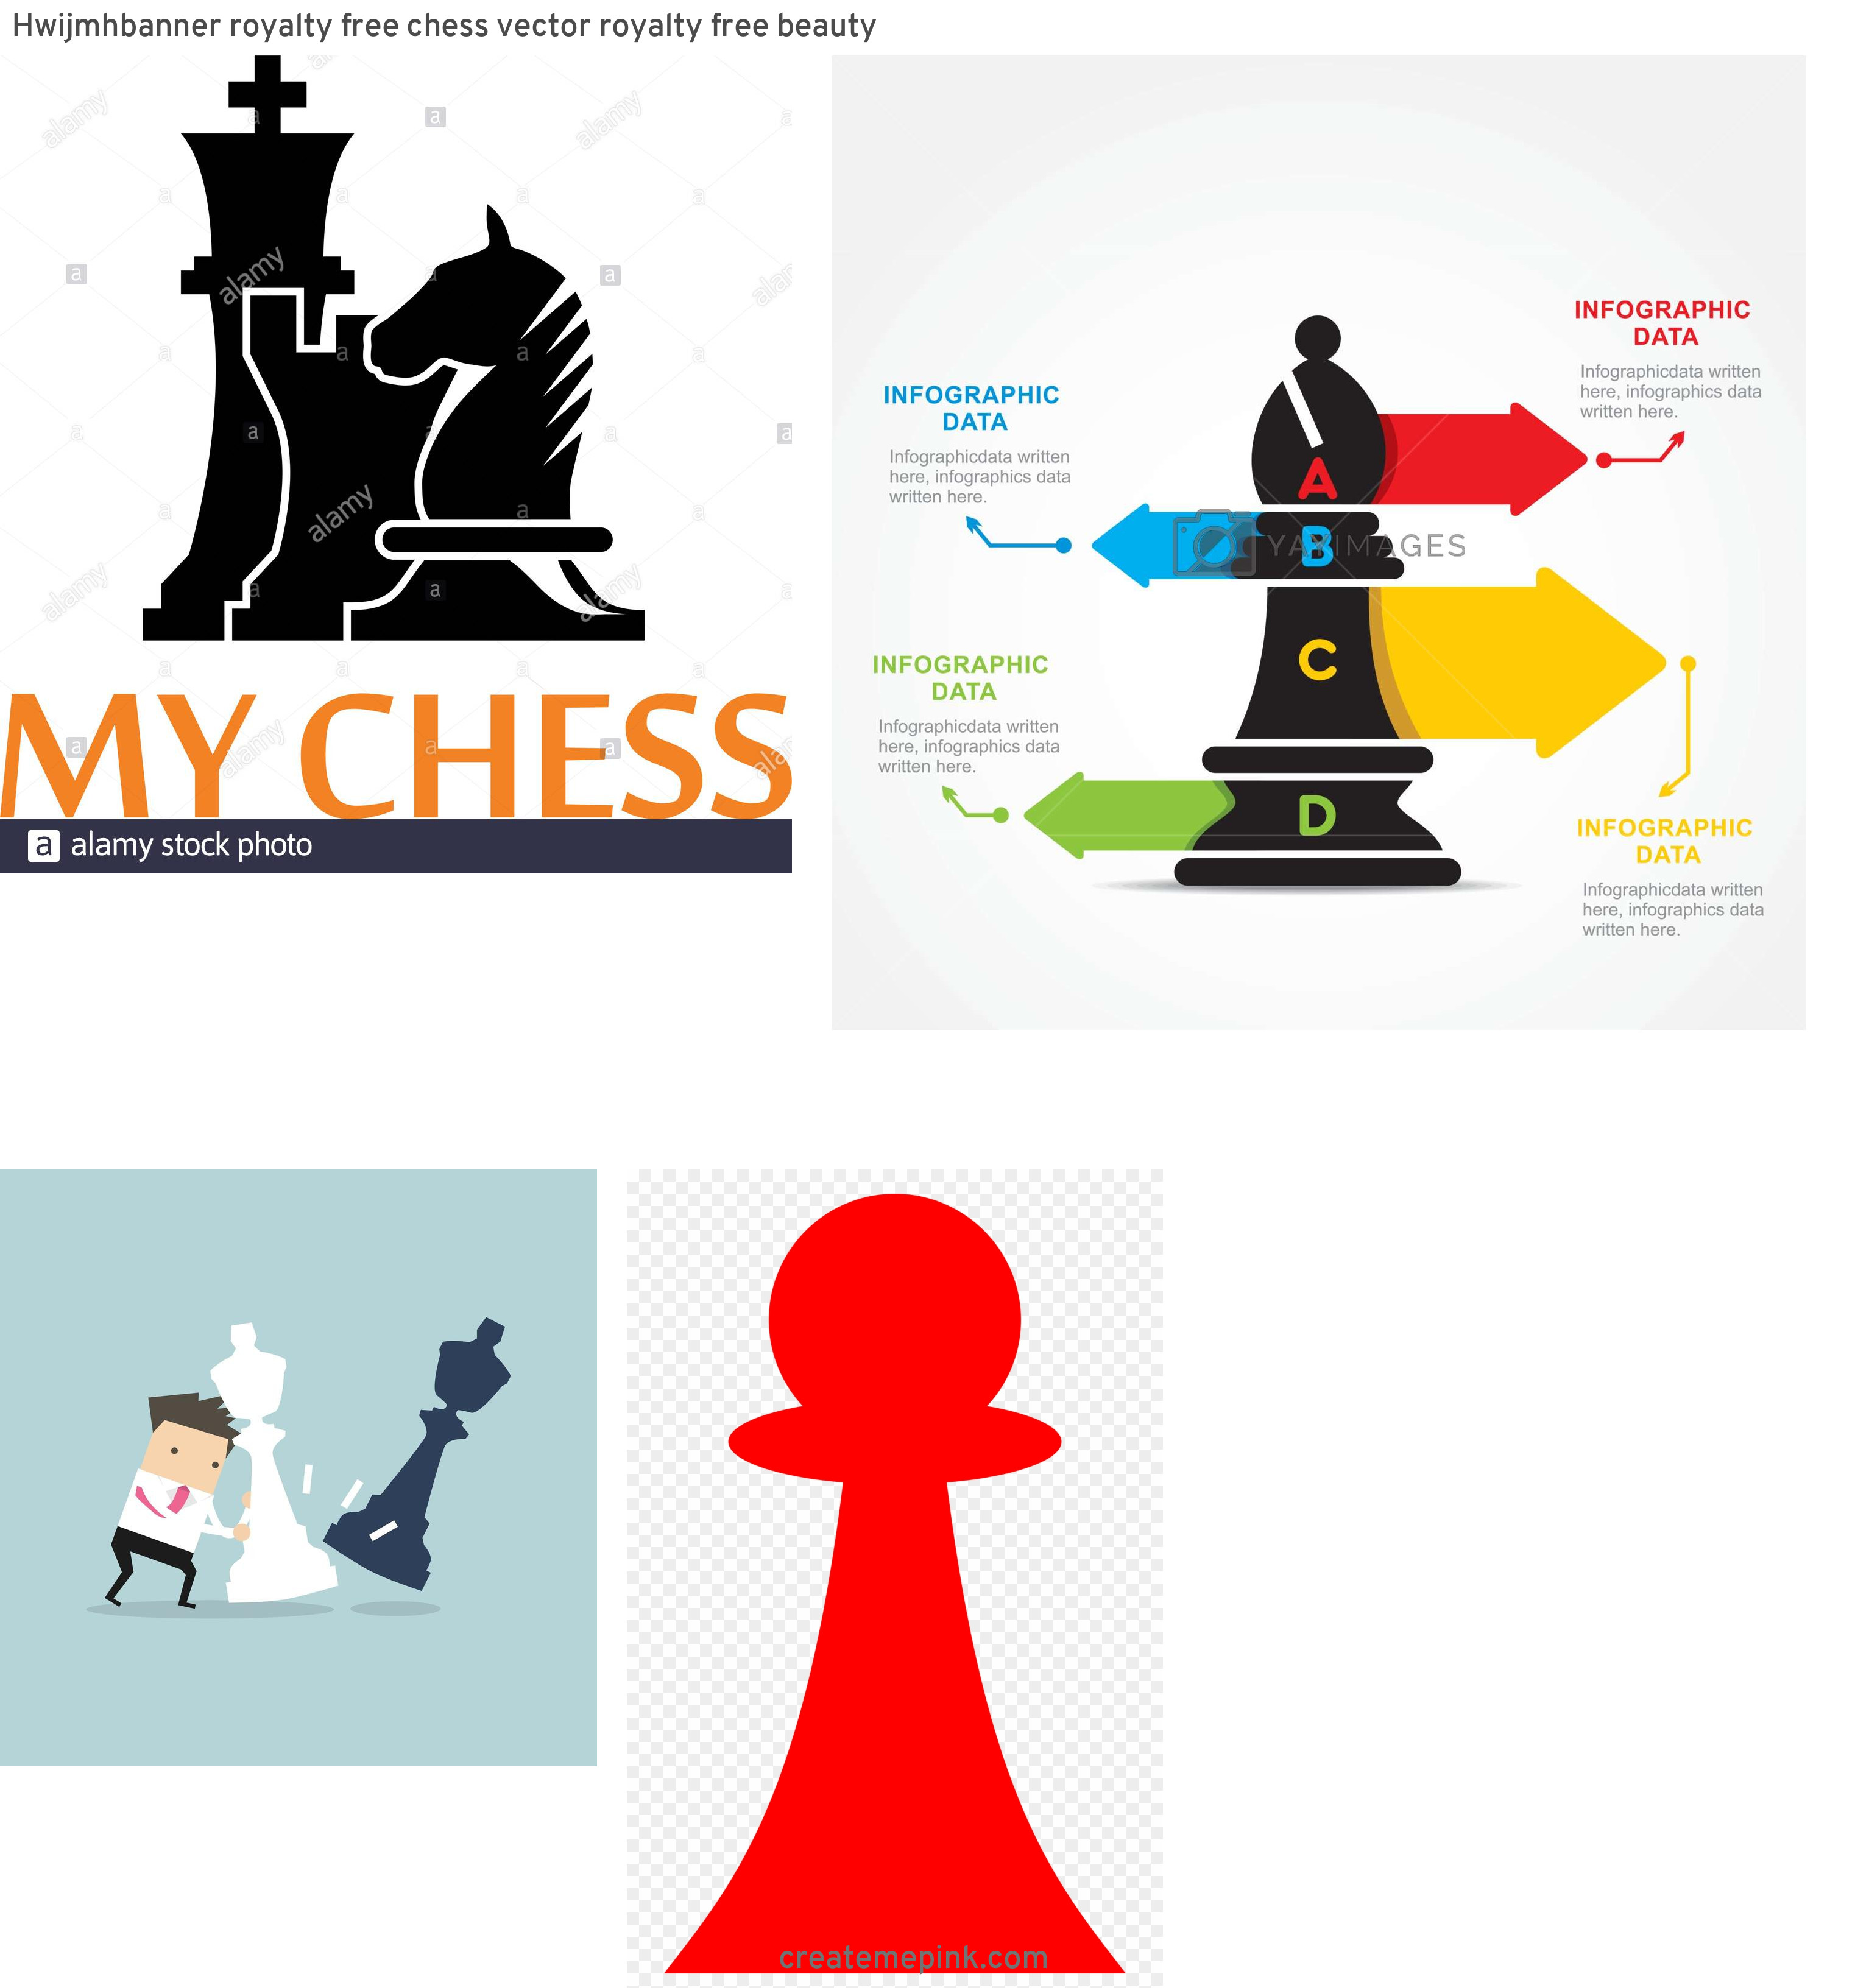 Chess Vector Graphic: Hwijmhbanner Royalty Free Chess Vector Royalty Free Beauty